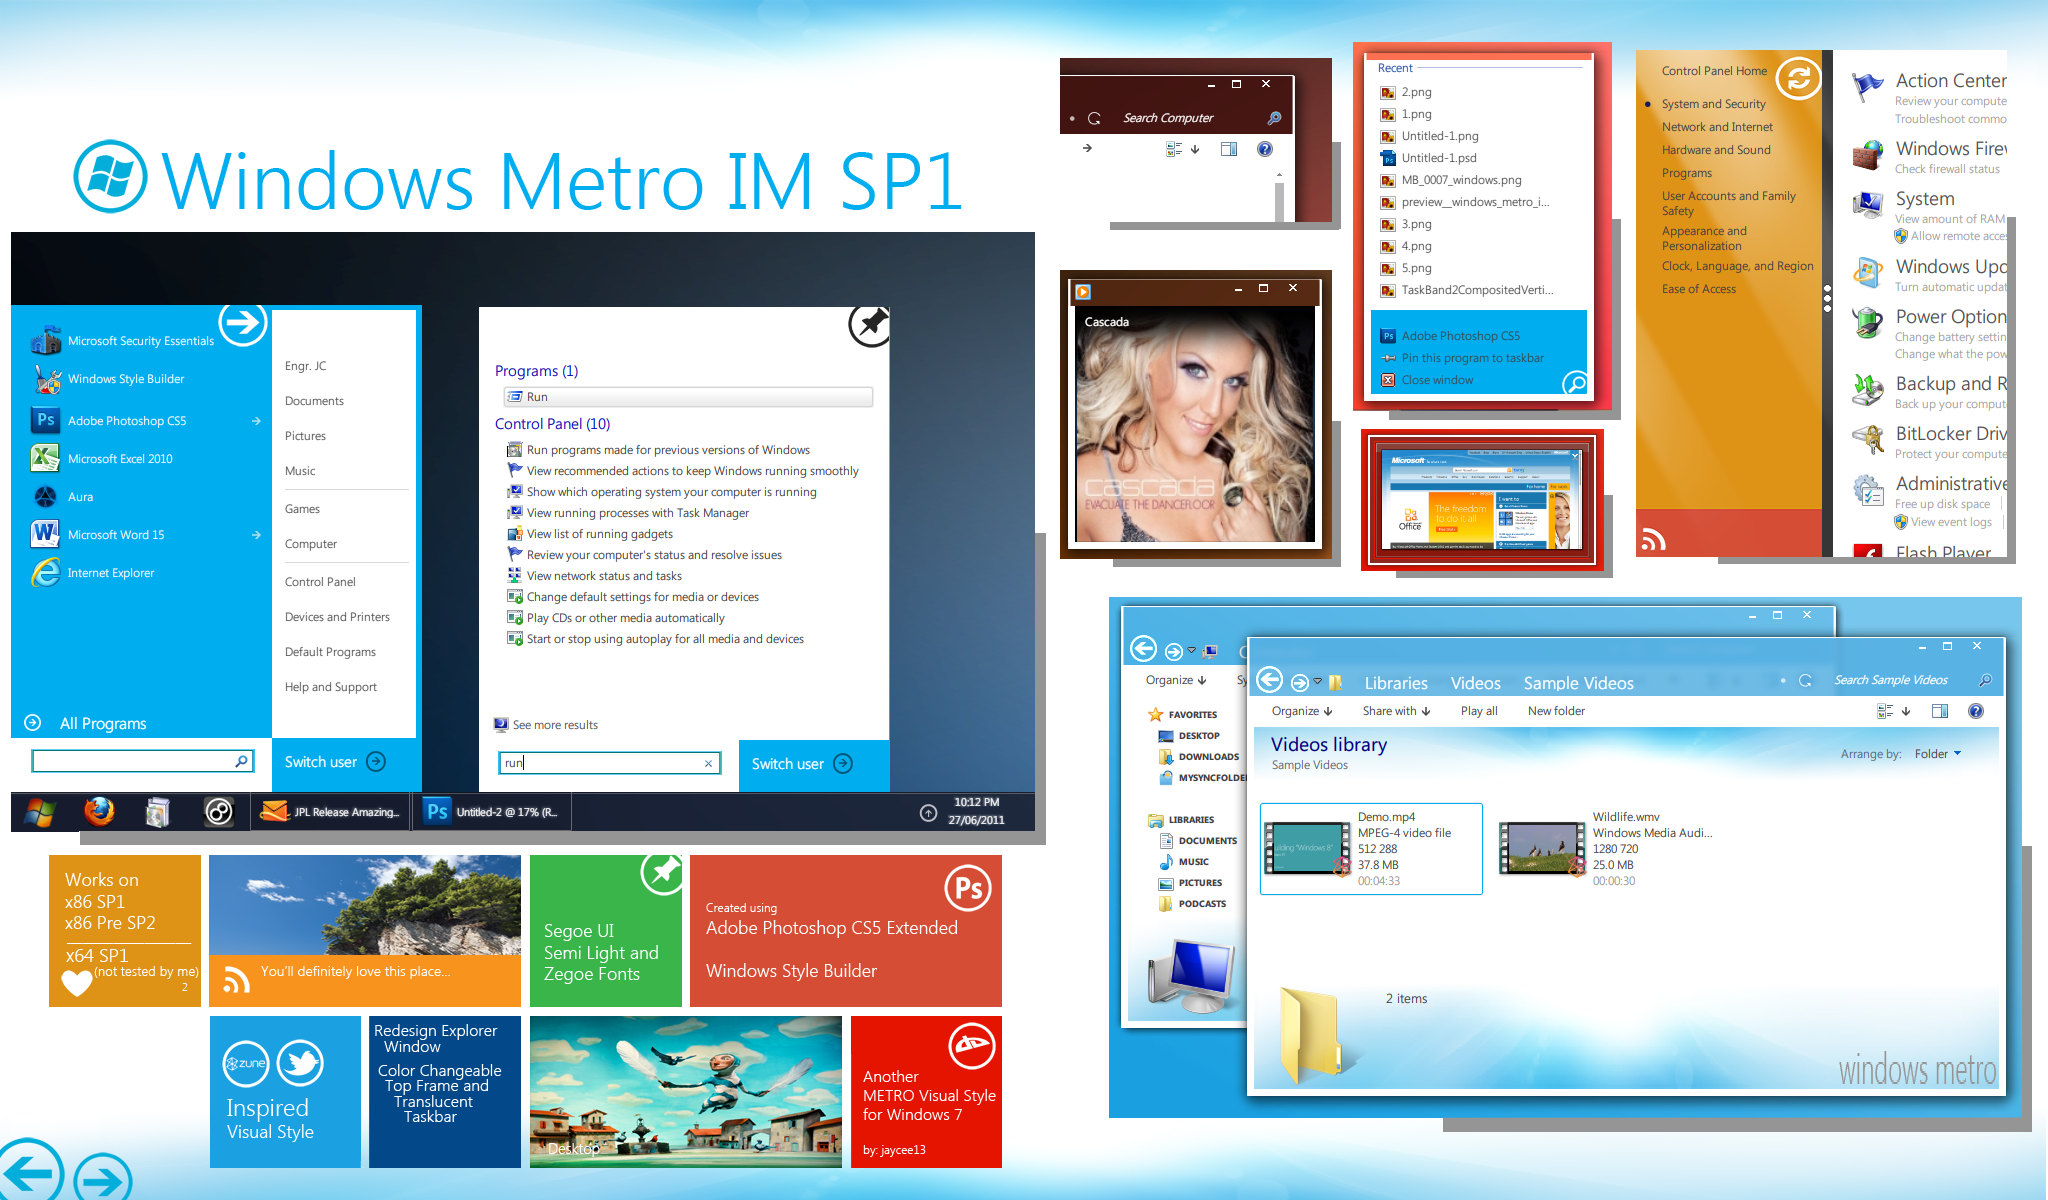 windows metro im sp1 by jaycee13 d3k8wgl - 10 Beautiful Themes To Colorize Your Windows 7 Desktop